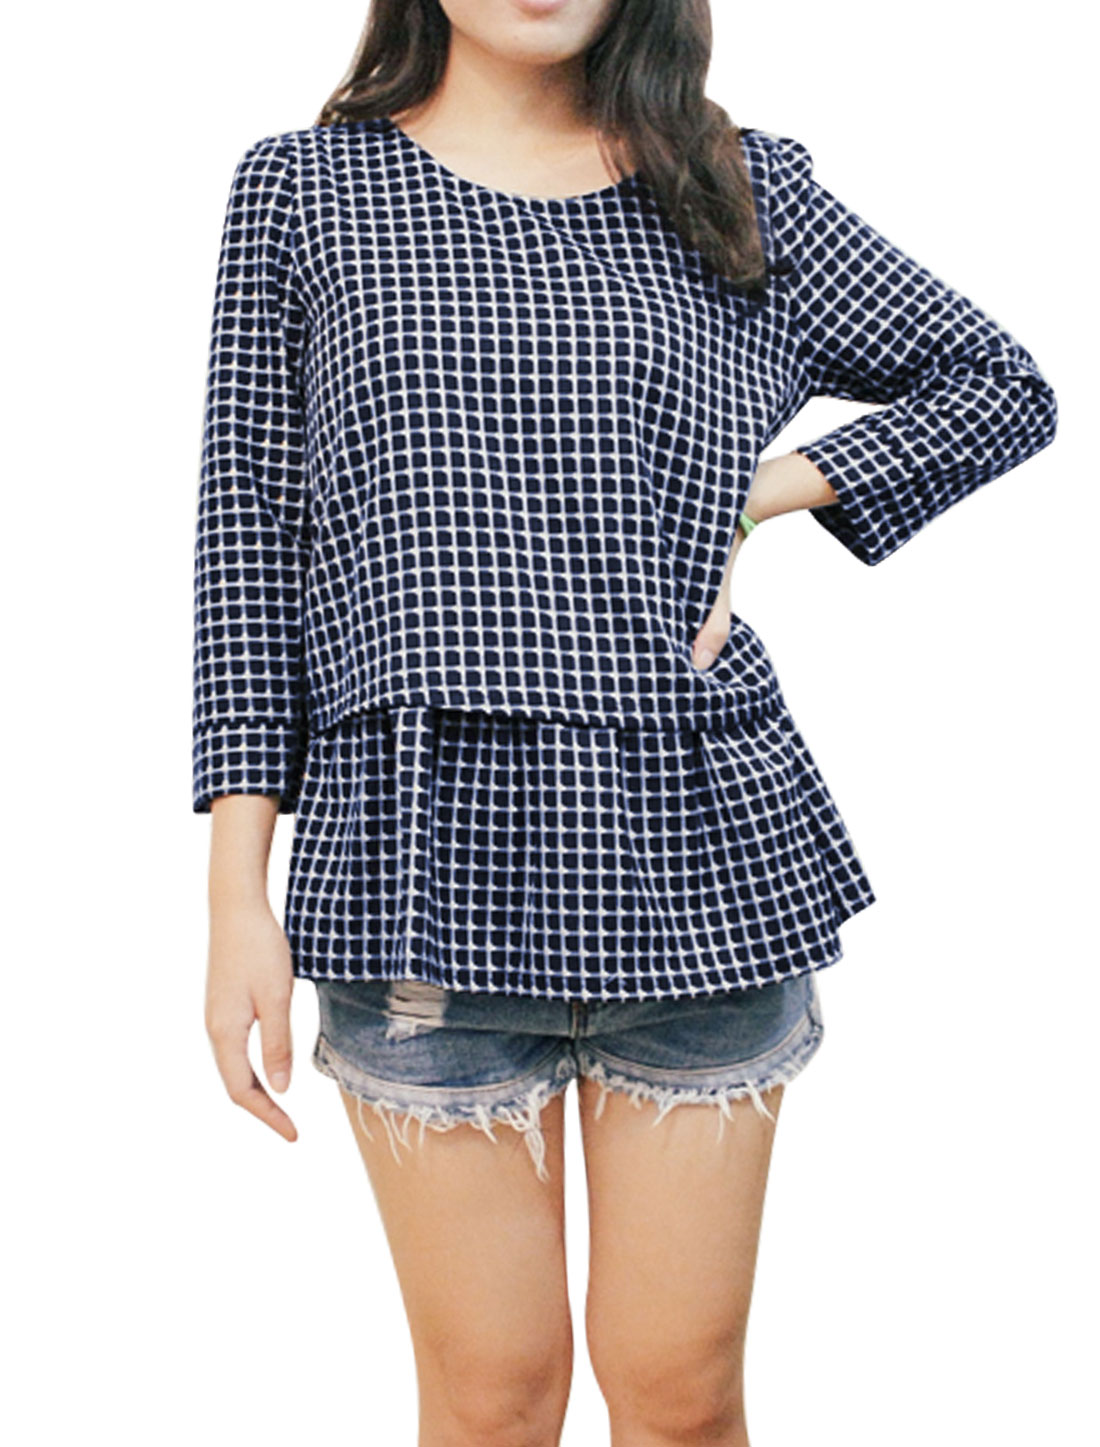 3/4 Sleeves Plaids Layered Shirts Tunic Top for Women Navy Blue XS